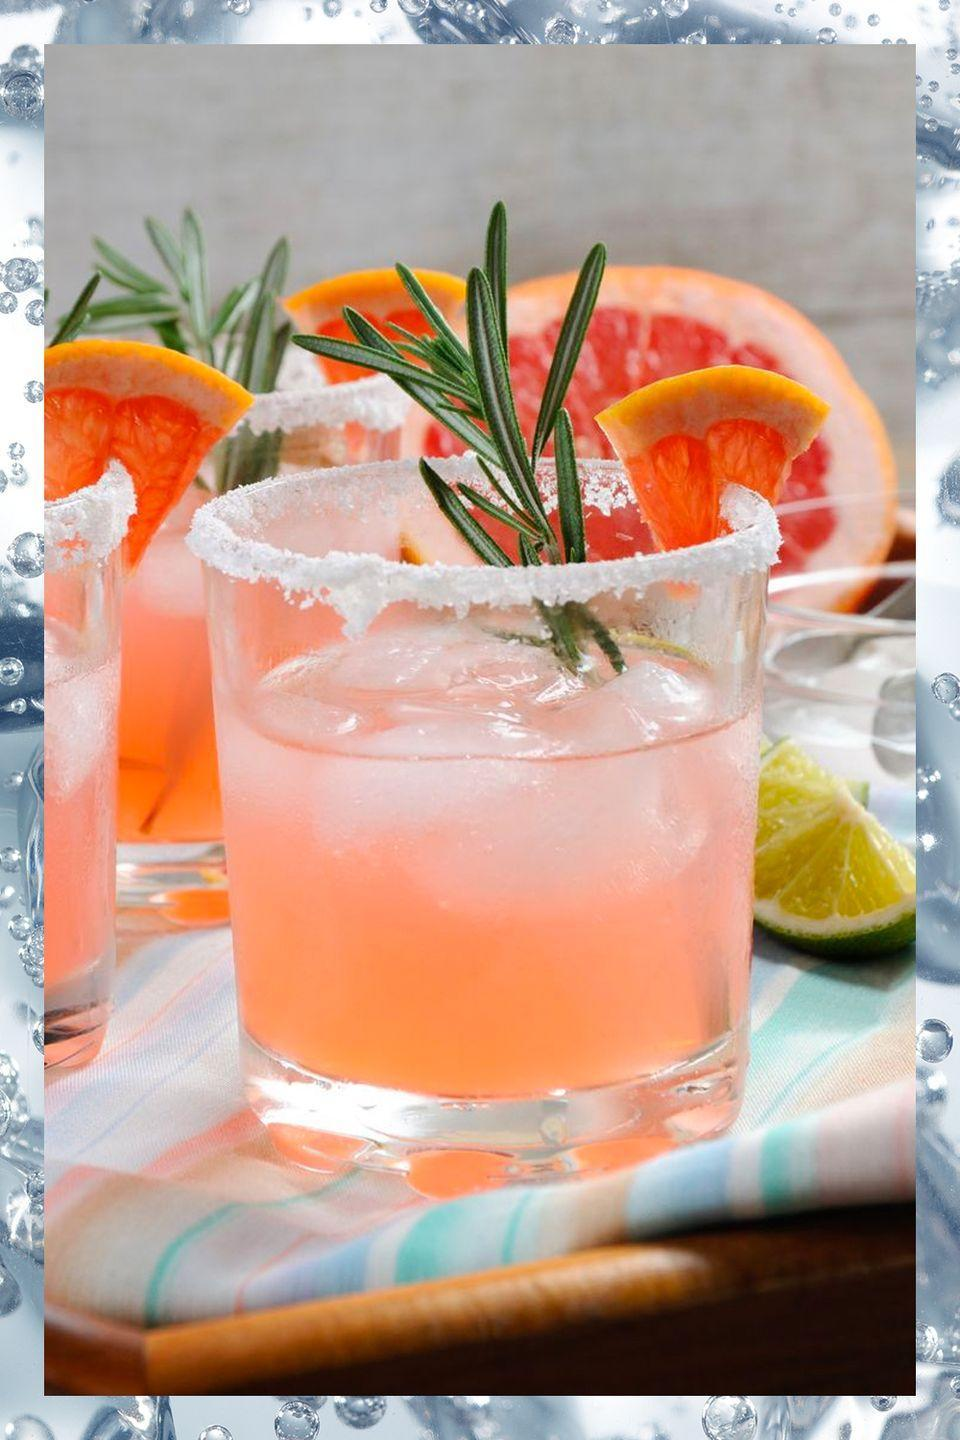 <p>In Mexico the paloma is just as popular as the classic margarita, and with a thirst-quenching combination of tequila, lime, and grapefruit soda it's bound to become a summer favorite of yours too. </p><p>- 2 oz tequila<br>- .5 oz lime juice<br>- Grapefruit soda to top</p><p><em>Add tequila and lime to a salt-rimmed glass filled with ice. Top with grapefruit soda. </em></p>